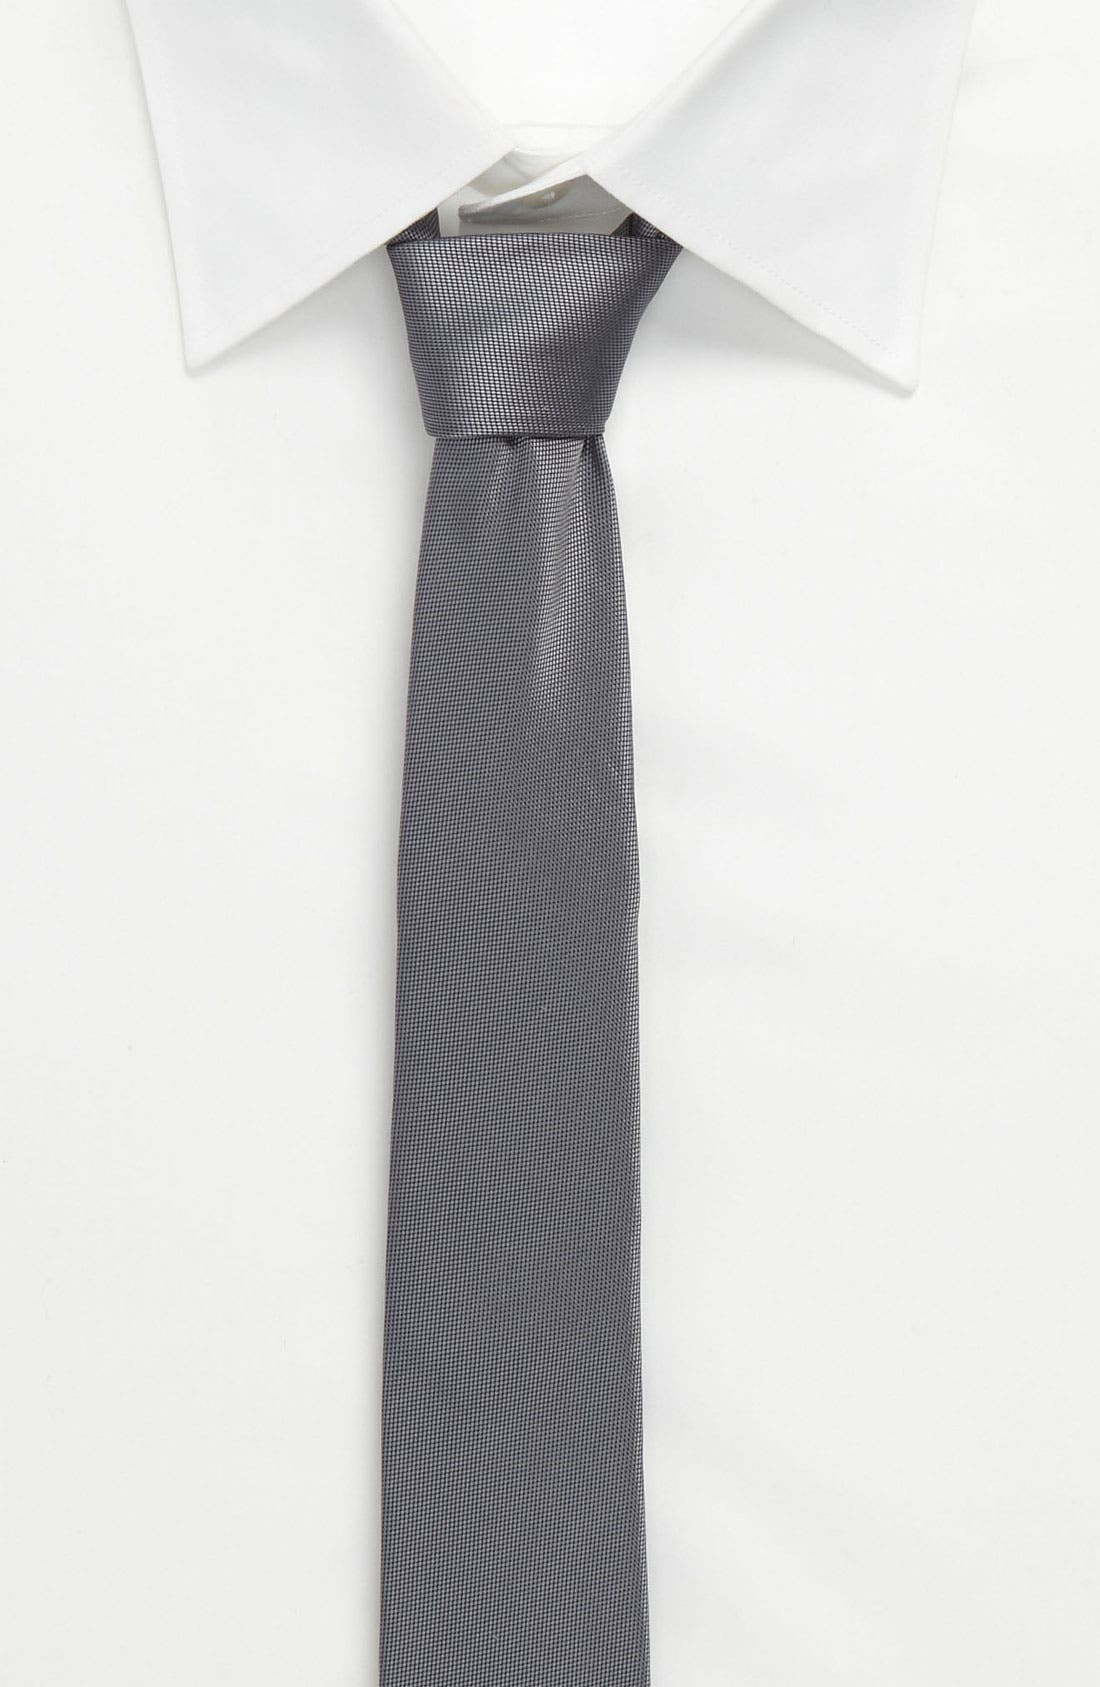 Alternate Image 3  - Topman Narrow Textured Tie